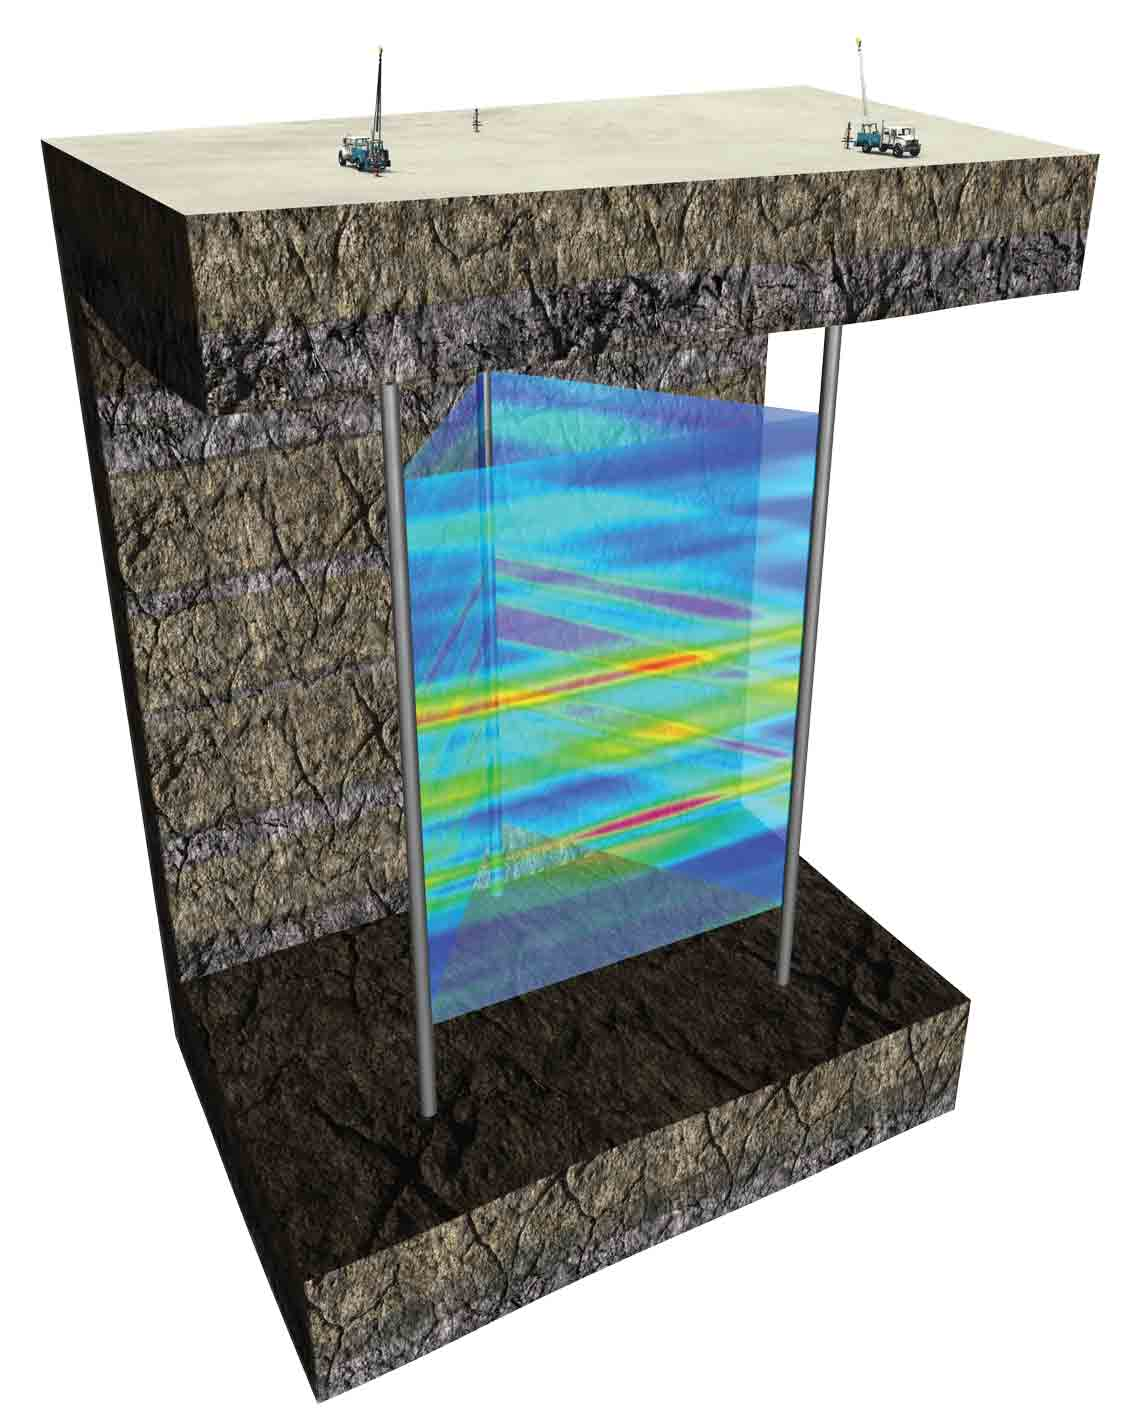 The DeepLook-EM crosswell acquisition system directly measures the resistivity of the reservoir between wells up to 3,280 ft apart.